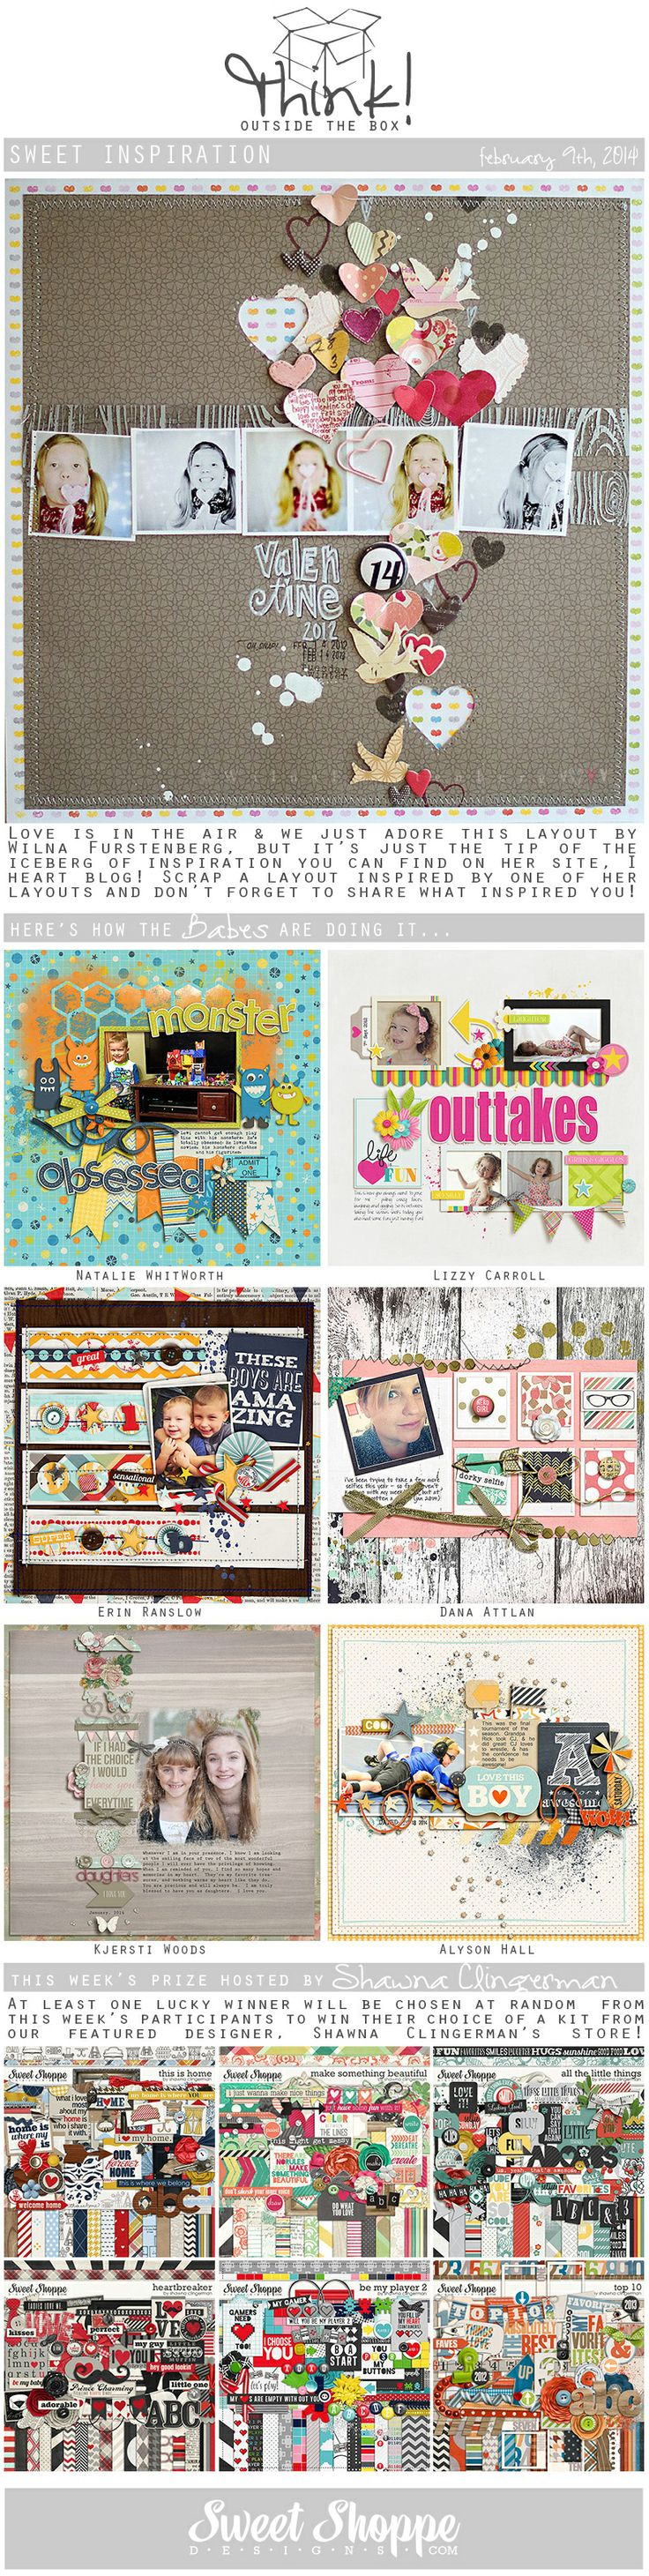 Looking for a fresh new take on a scrap challenge? Check out Sweet Shoppe Designs' Think Outside The Box challenge for February 9th and scrap along for your chance to win a kit from our Featured Designer's store and to start earning discounts every month!